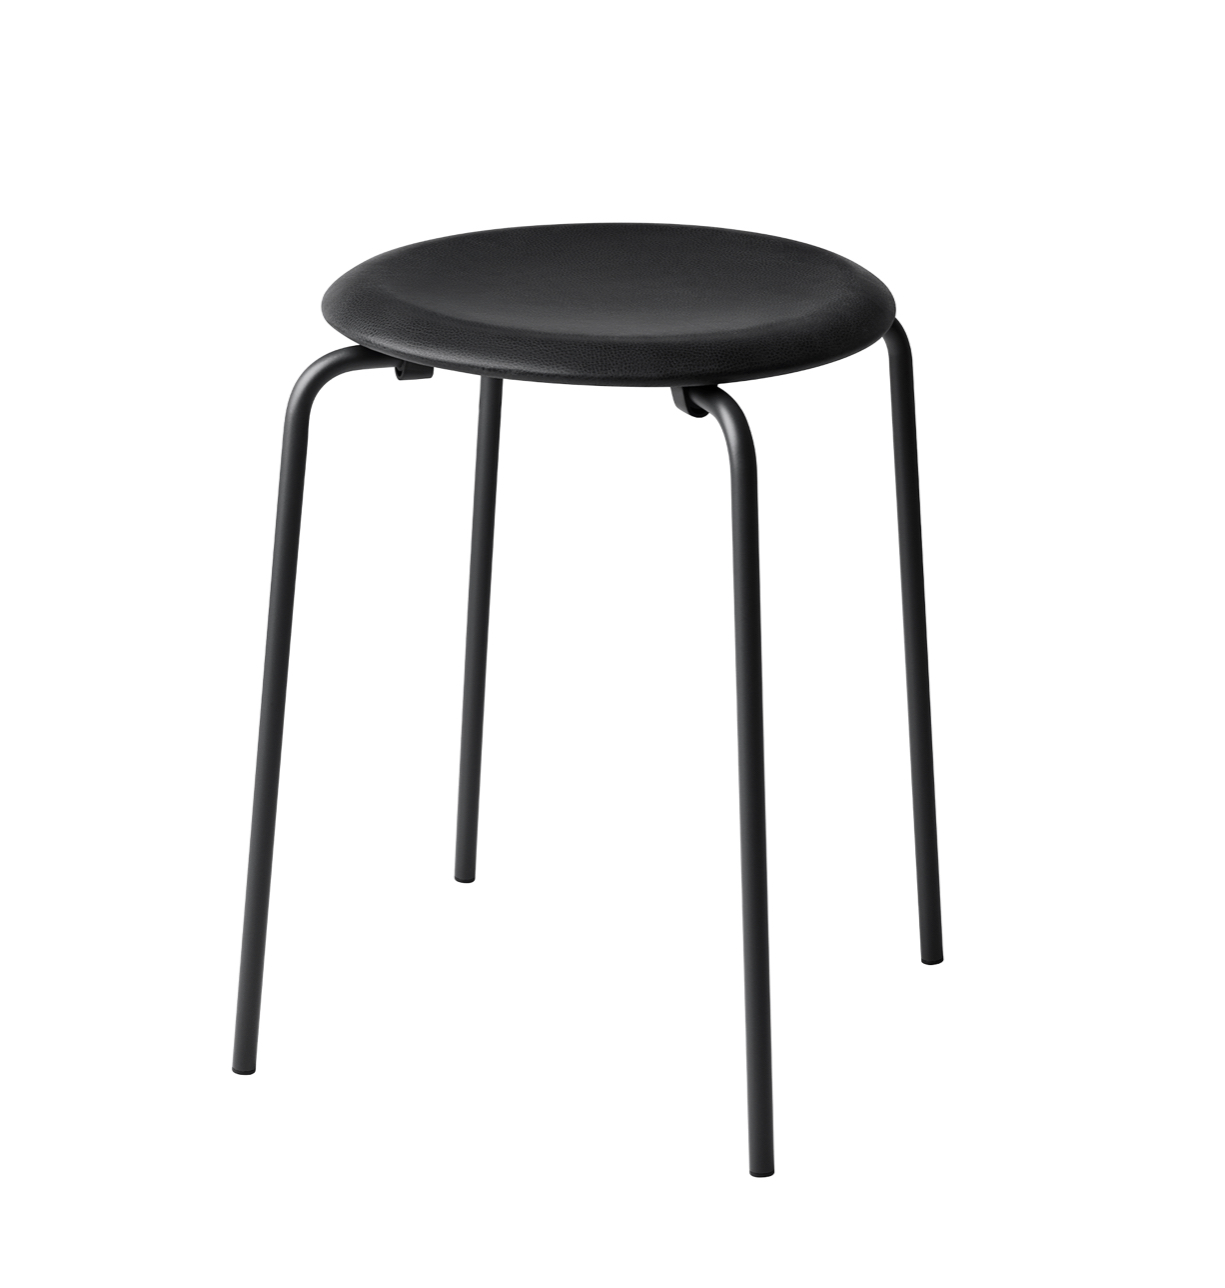 Arne Jacobsen Stool DOT by Fritz Hansen